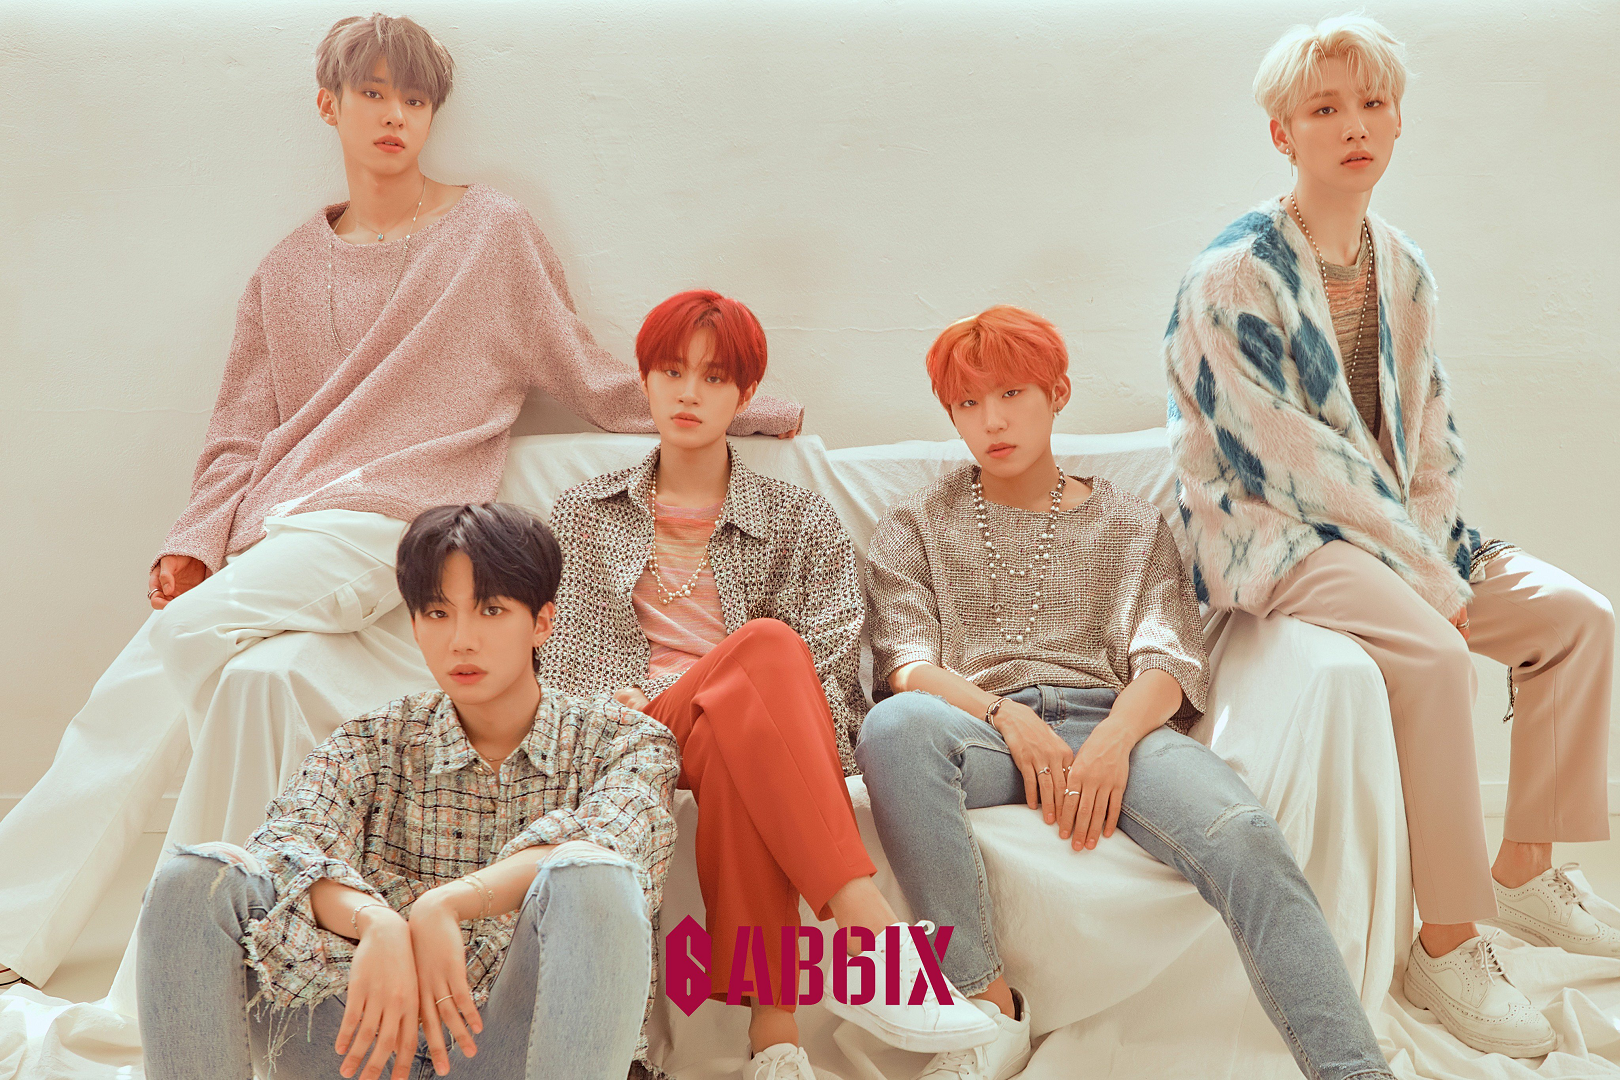 Image result for ab6ix